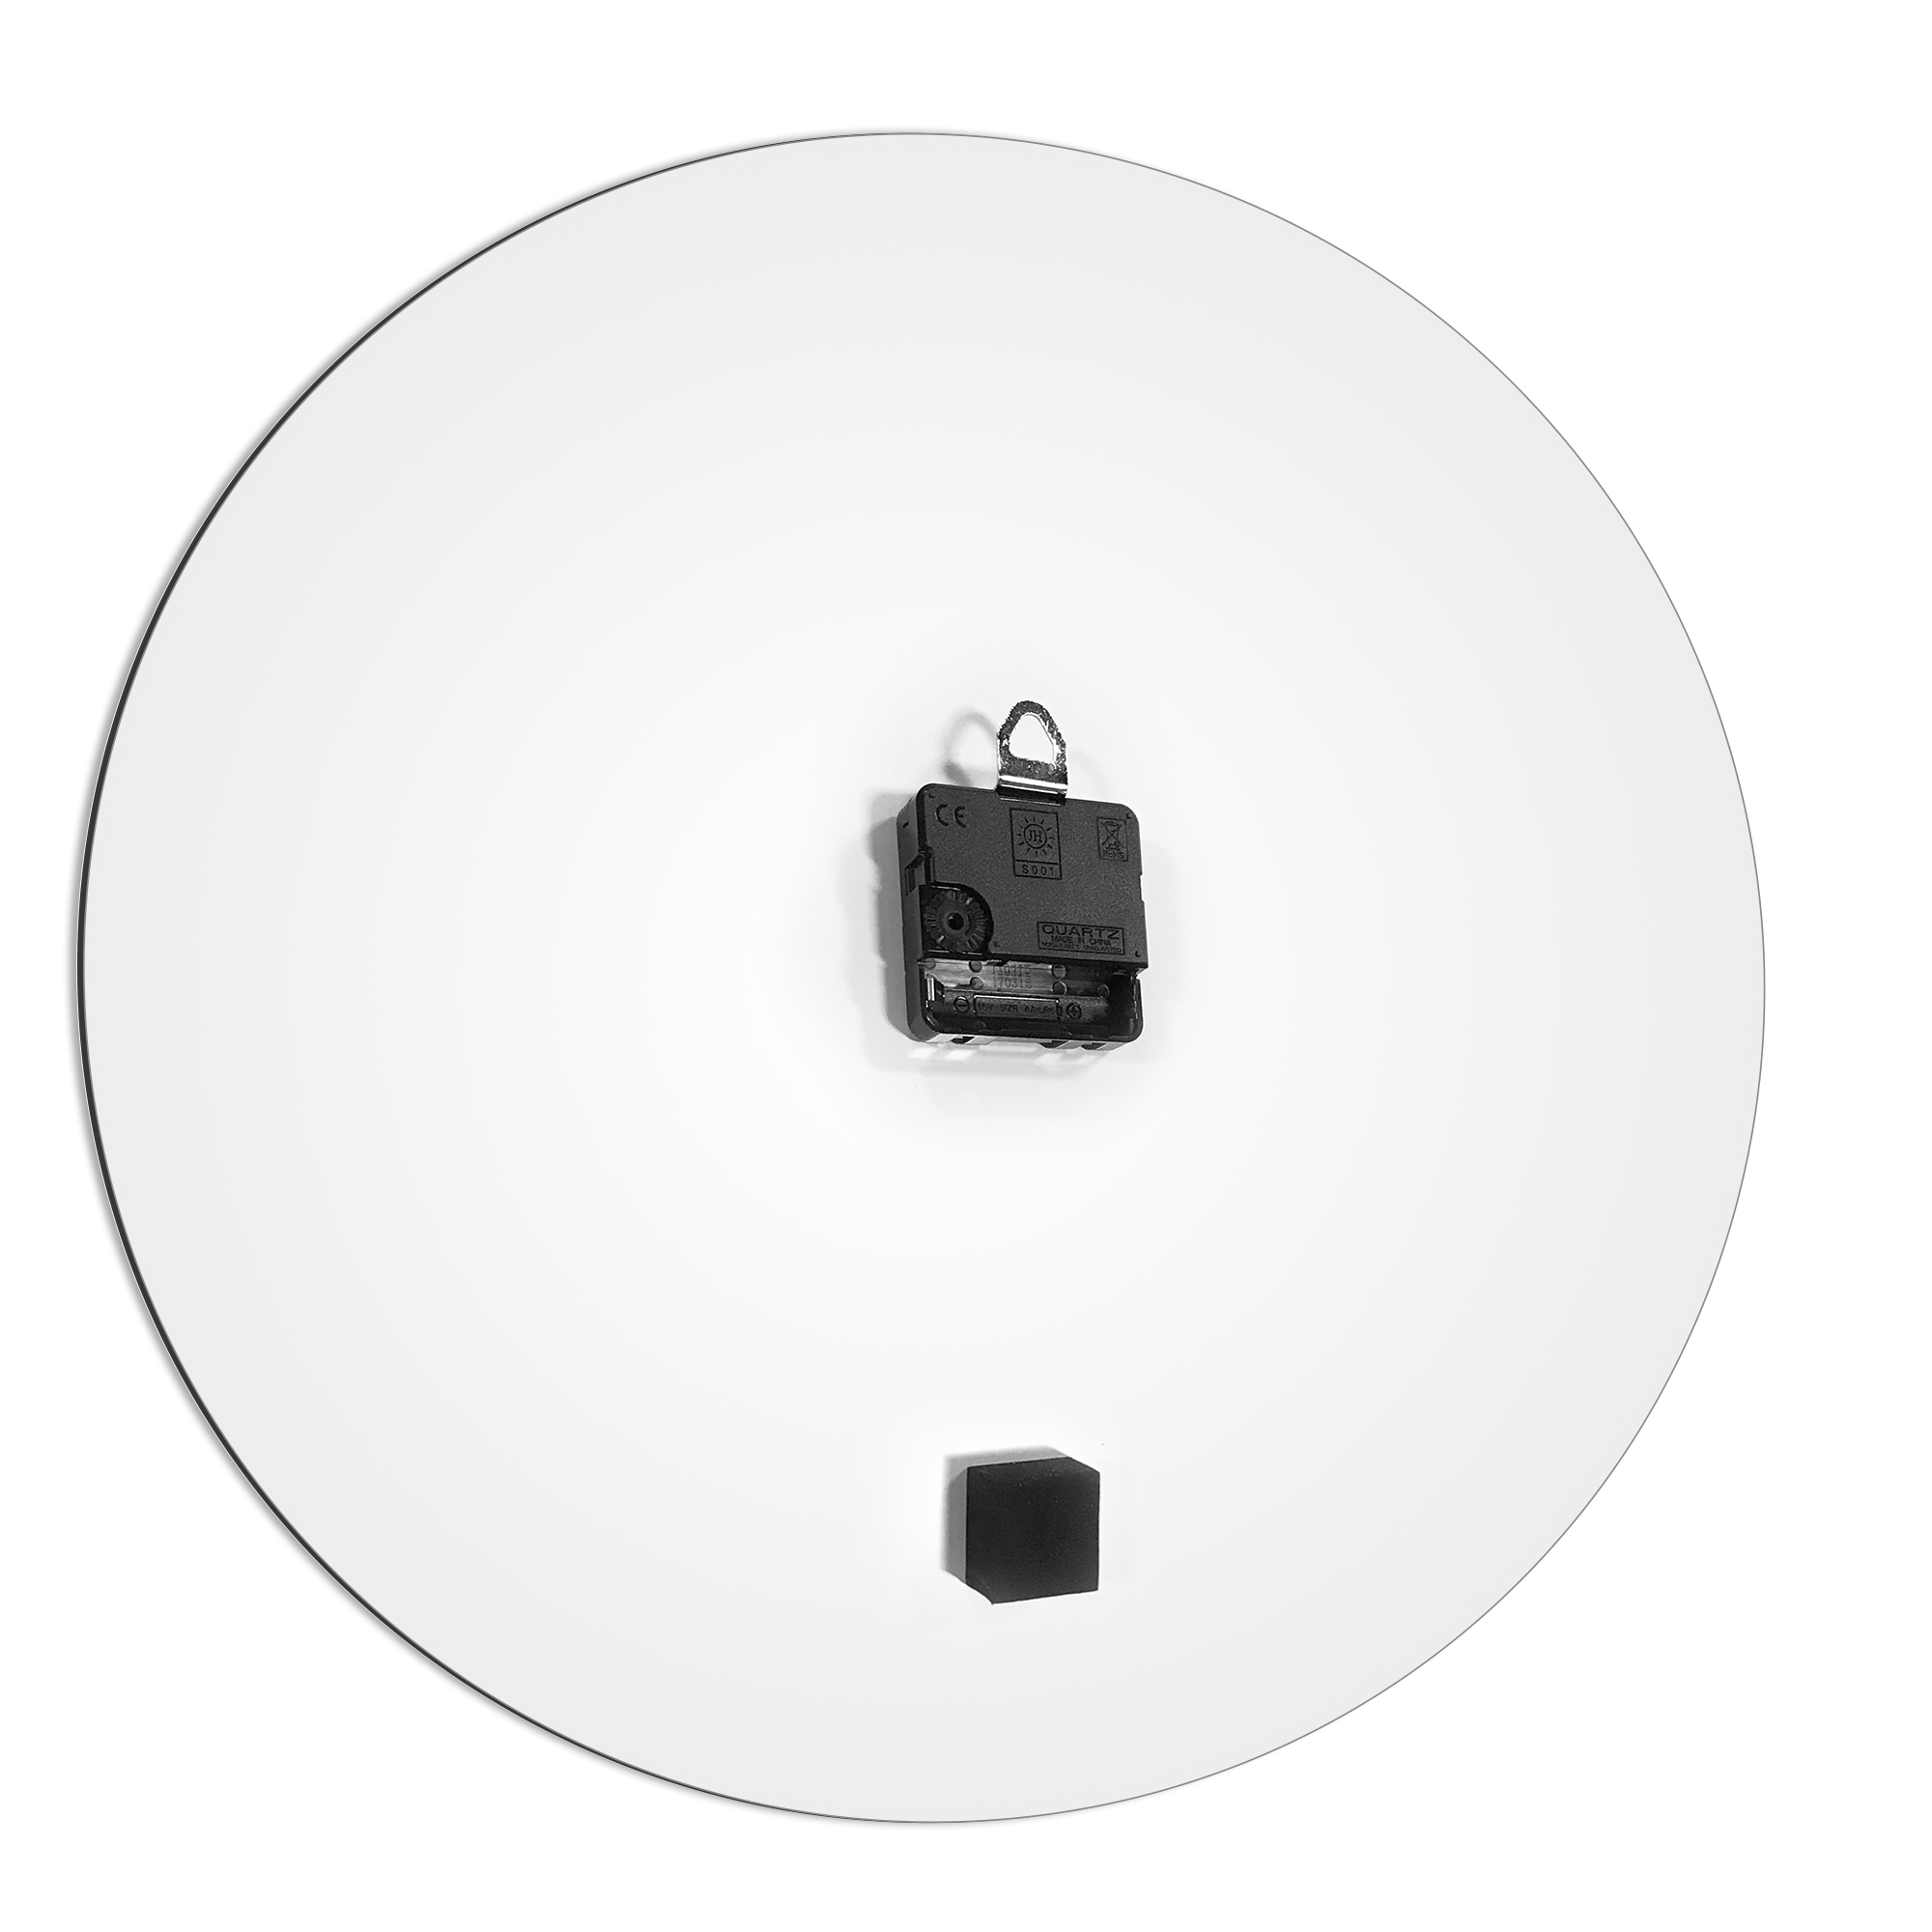 Orangeout White Circle Clock Large by Adam Schwoeppe Contemporary Clock on Aluminum Polymetal - Alternate View 3